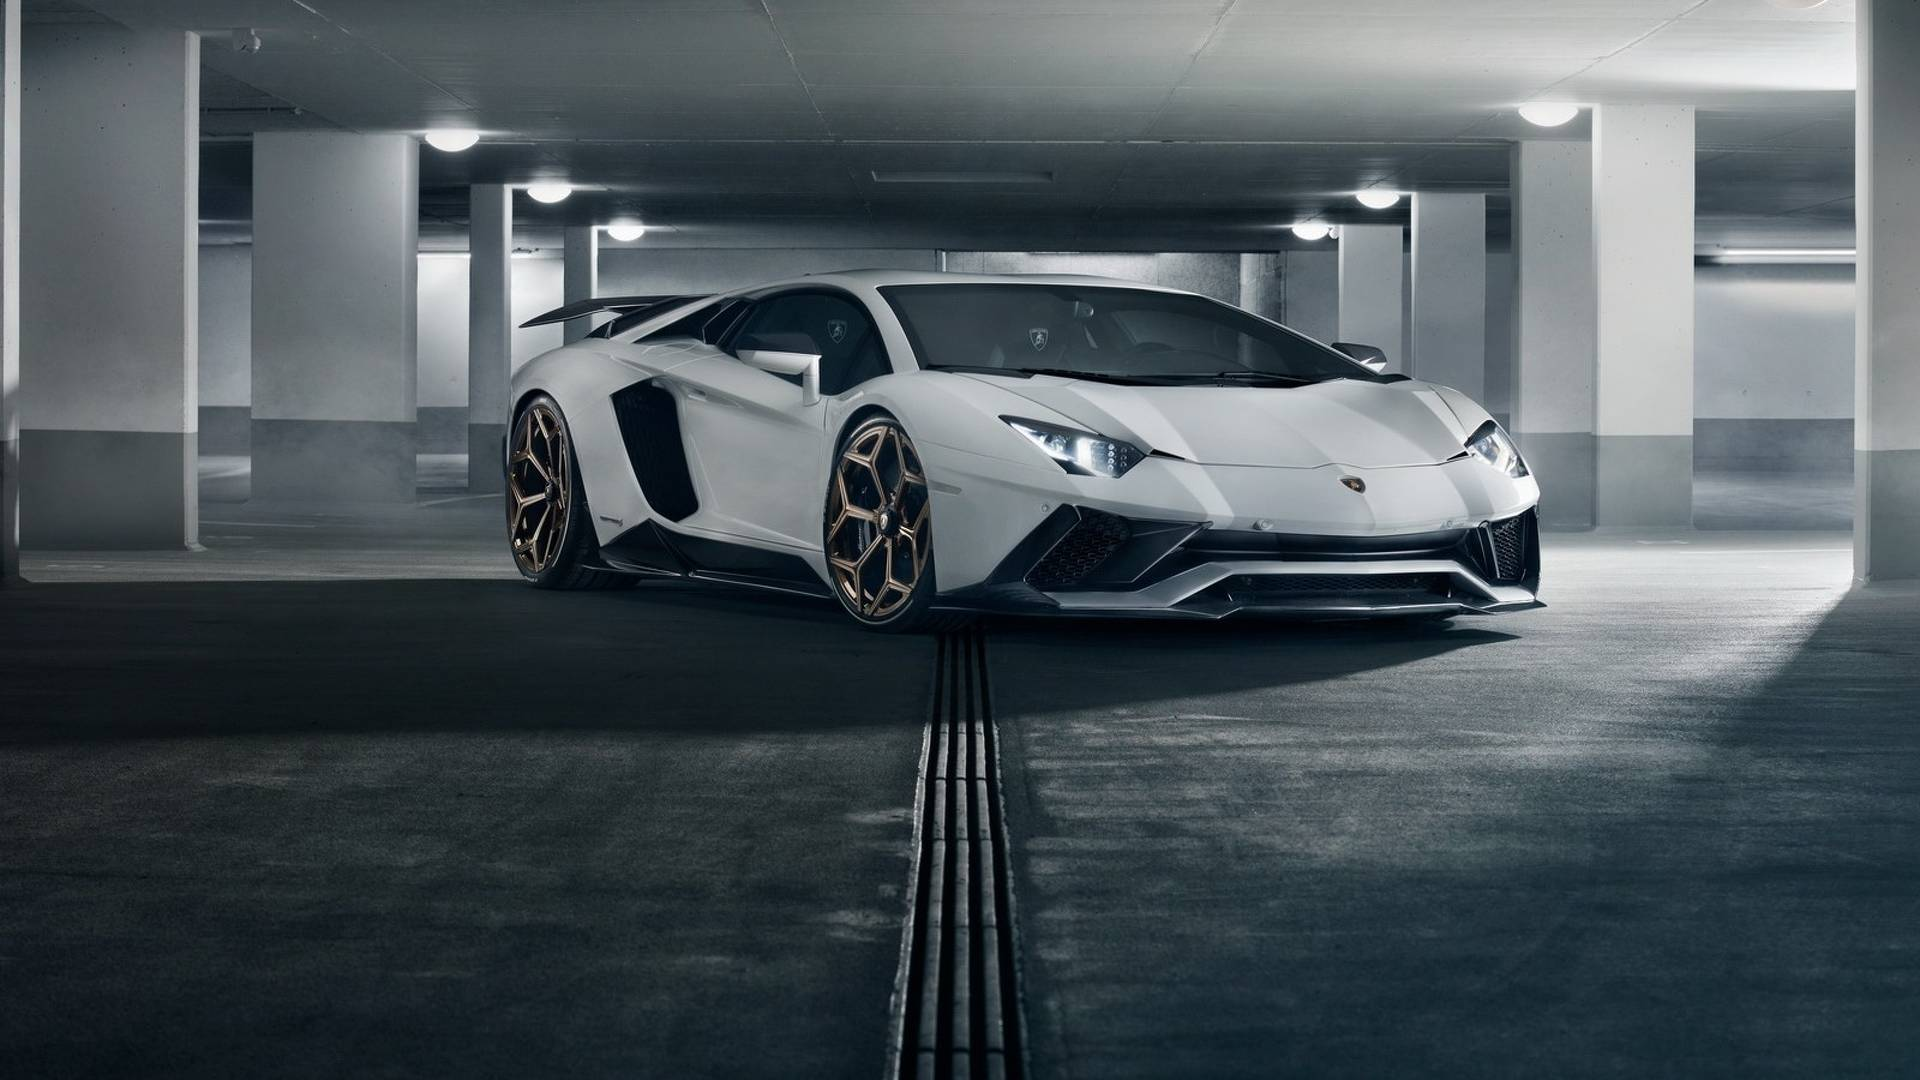 Lucky owners of the lush Lamborghini Aventador S can now upgrade their vehicle for even more performance and acceleration dynamics. Novitec has released an extensive tuning package for the already more than able supercar